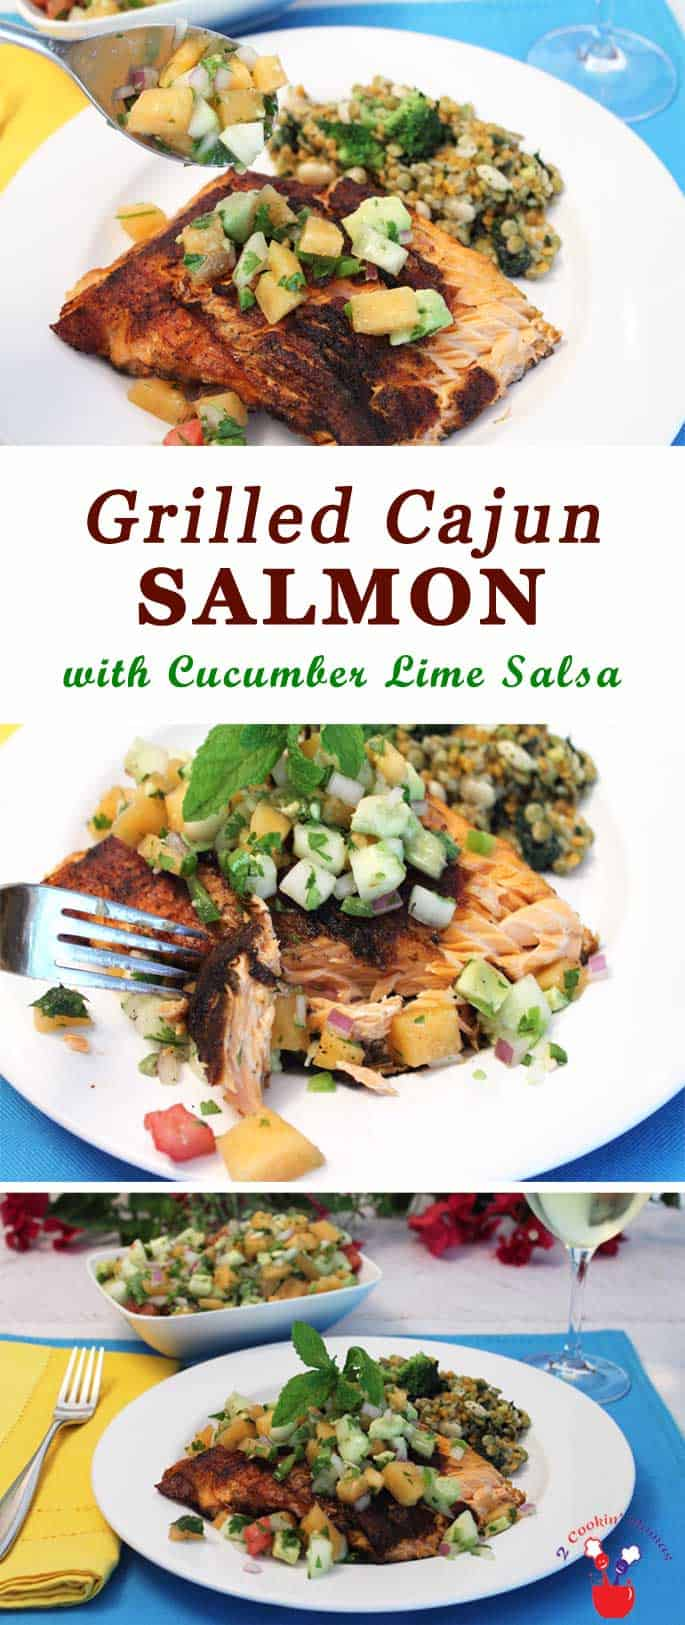 Grilled Cajun Salmon with Cucumber Lime Salsa | 2 Cookin Mamas Grilled cajun salmon with cucumber lime salsa is a little bit spicy & a little bit smoky. Top with our fresh cucumber & melon salsa for the perfect pairing of flavors! #recipe